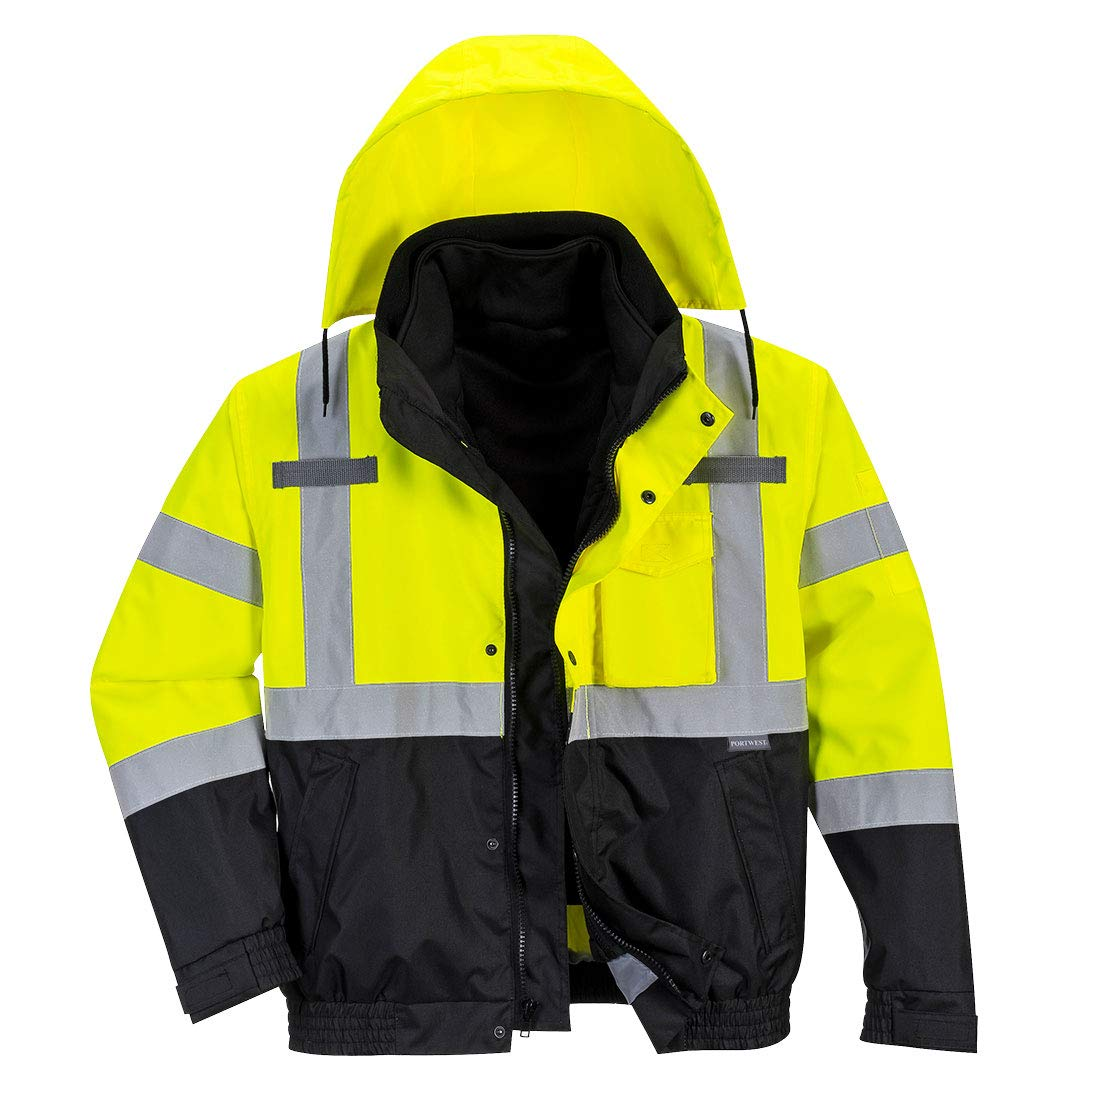 Portwest US365 Hi-Vis 3in1 Premium Bomber Jacket Textile, Size- 6X-Large, Yellow/Black by Portwest